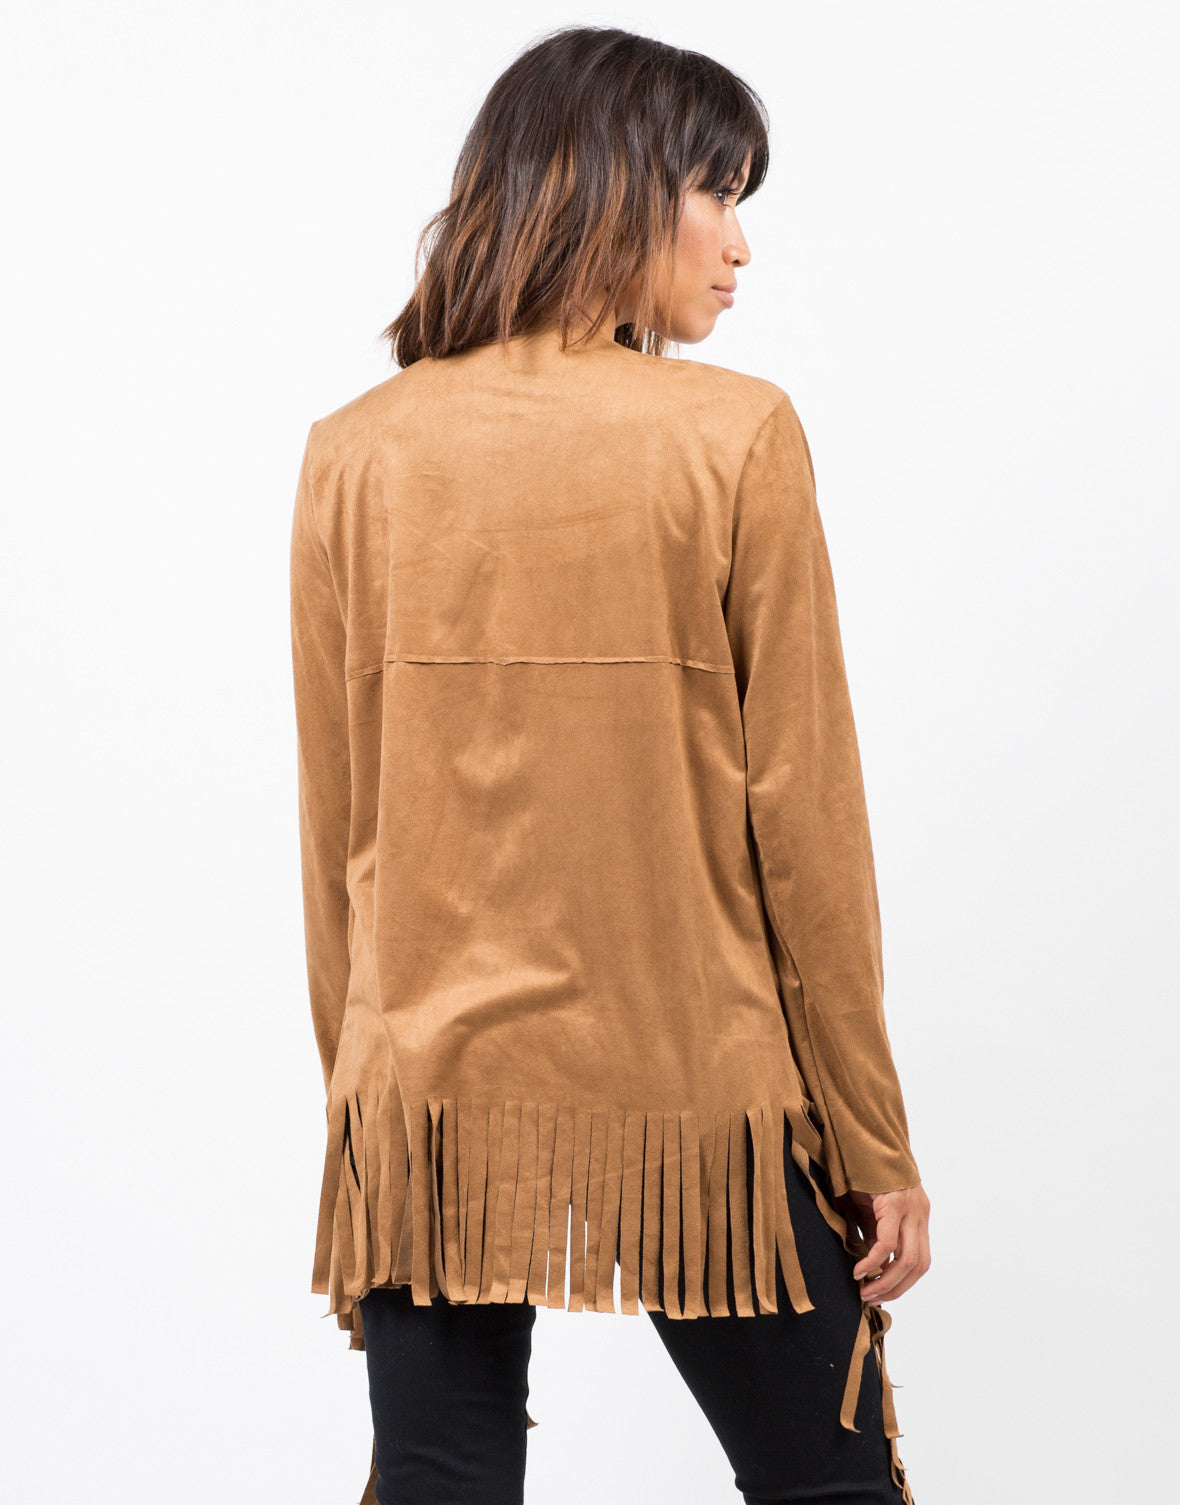 Back View of Light Suede Fringe Jacket